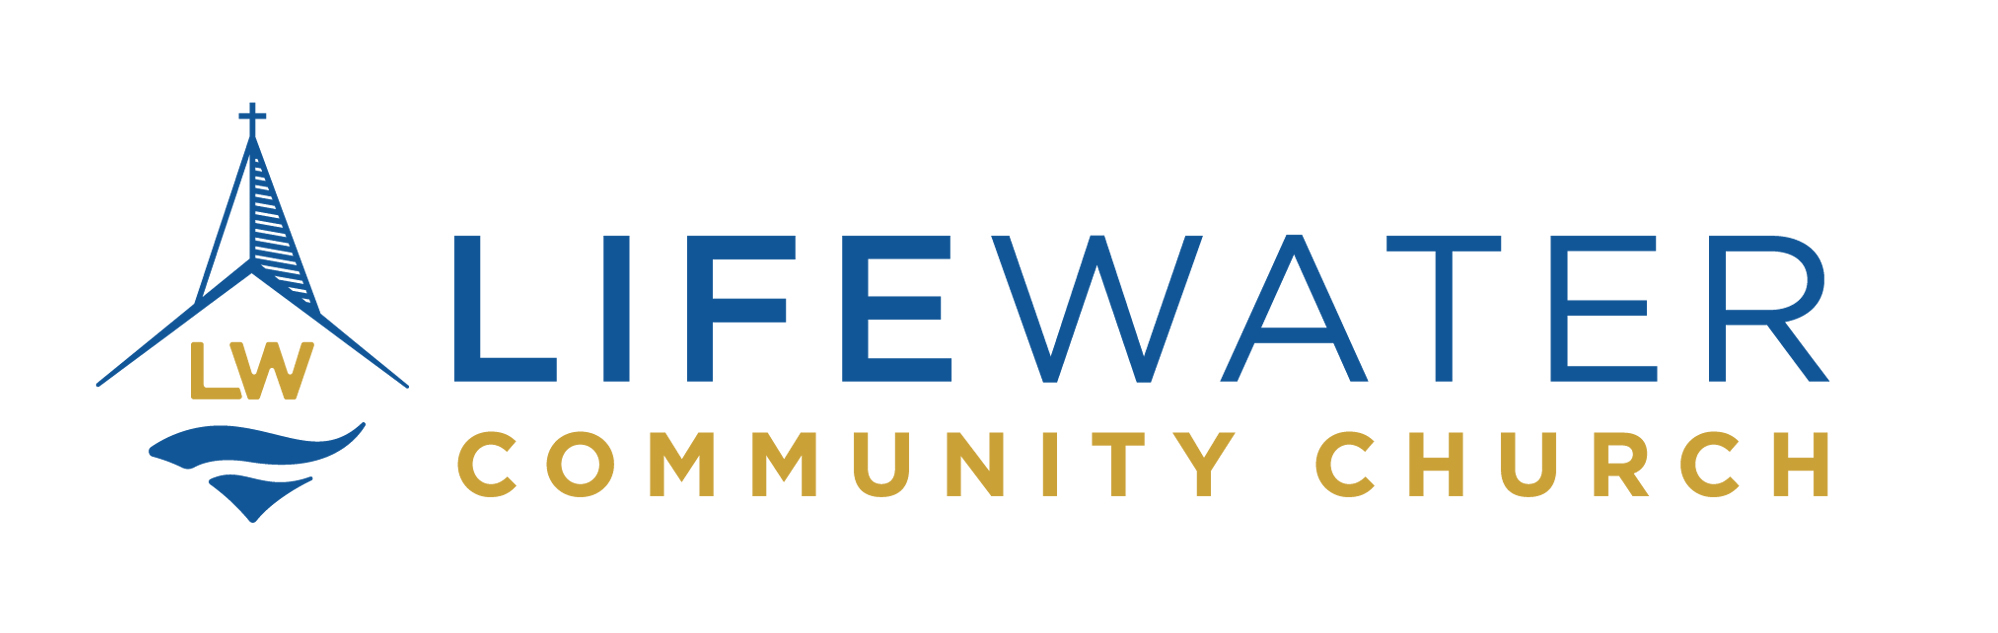 Lifewater new logo final.jpg